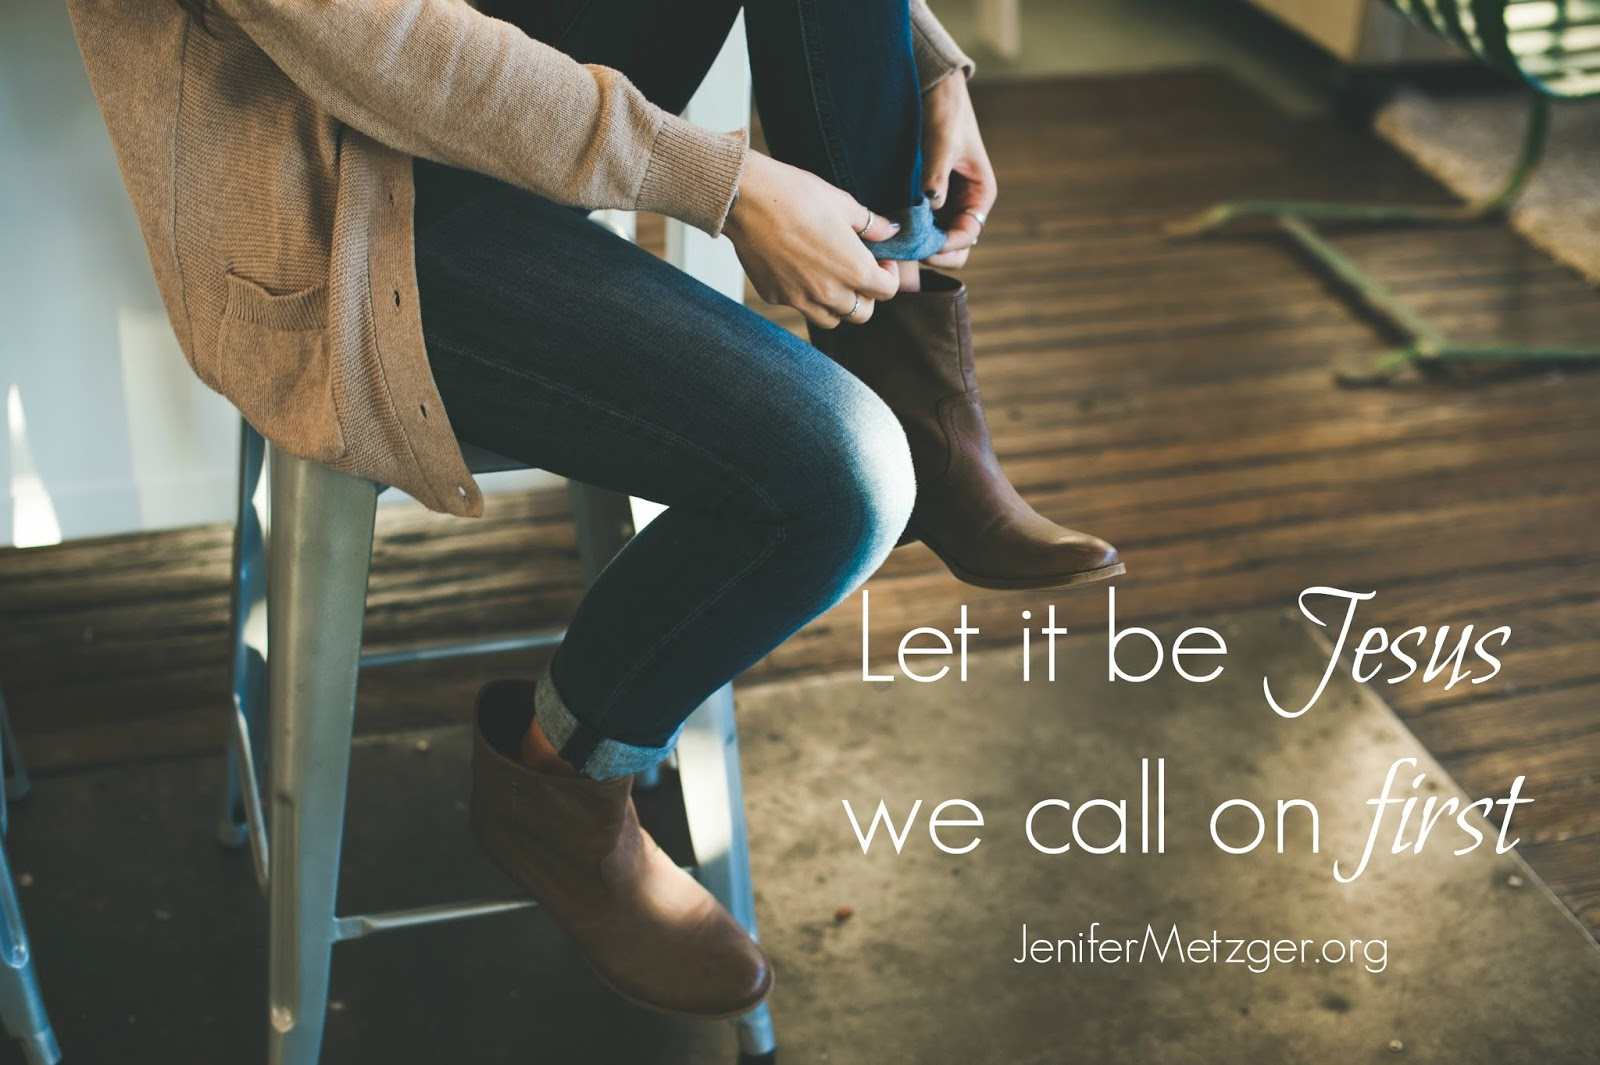 Let it be Jesus we call on first.